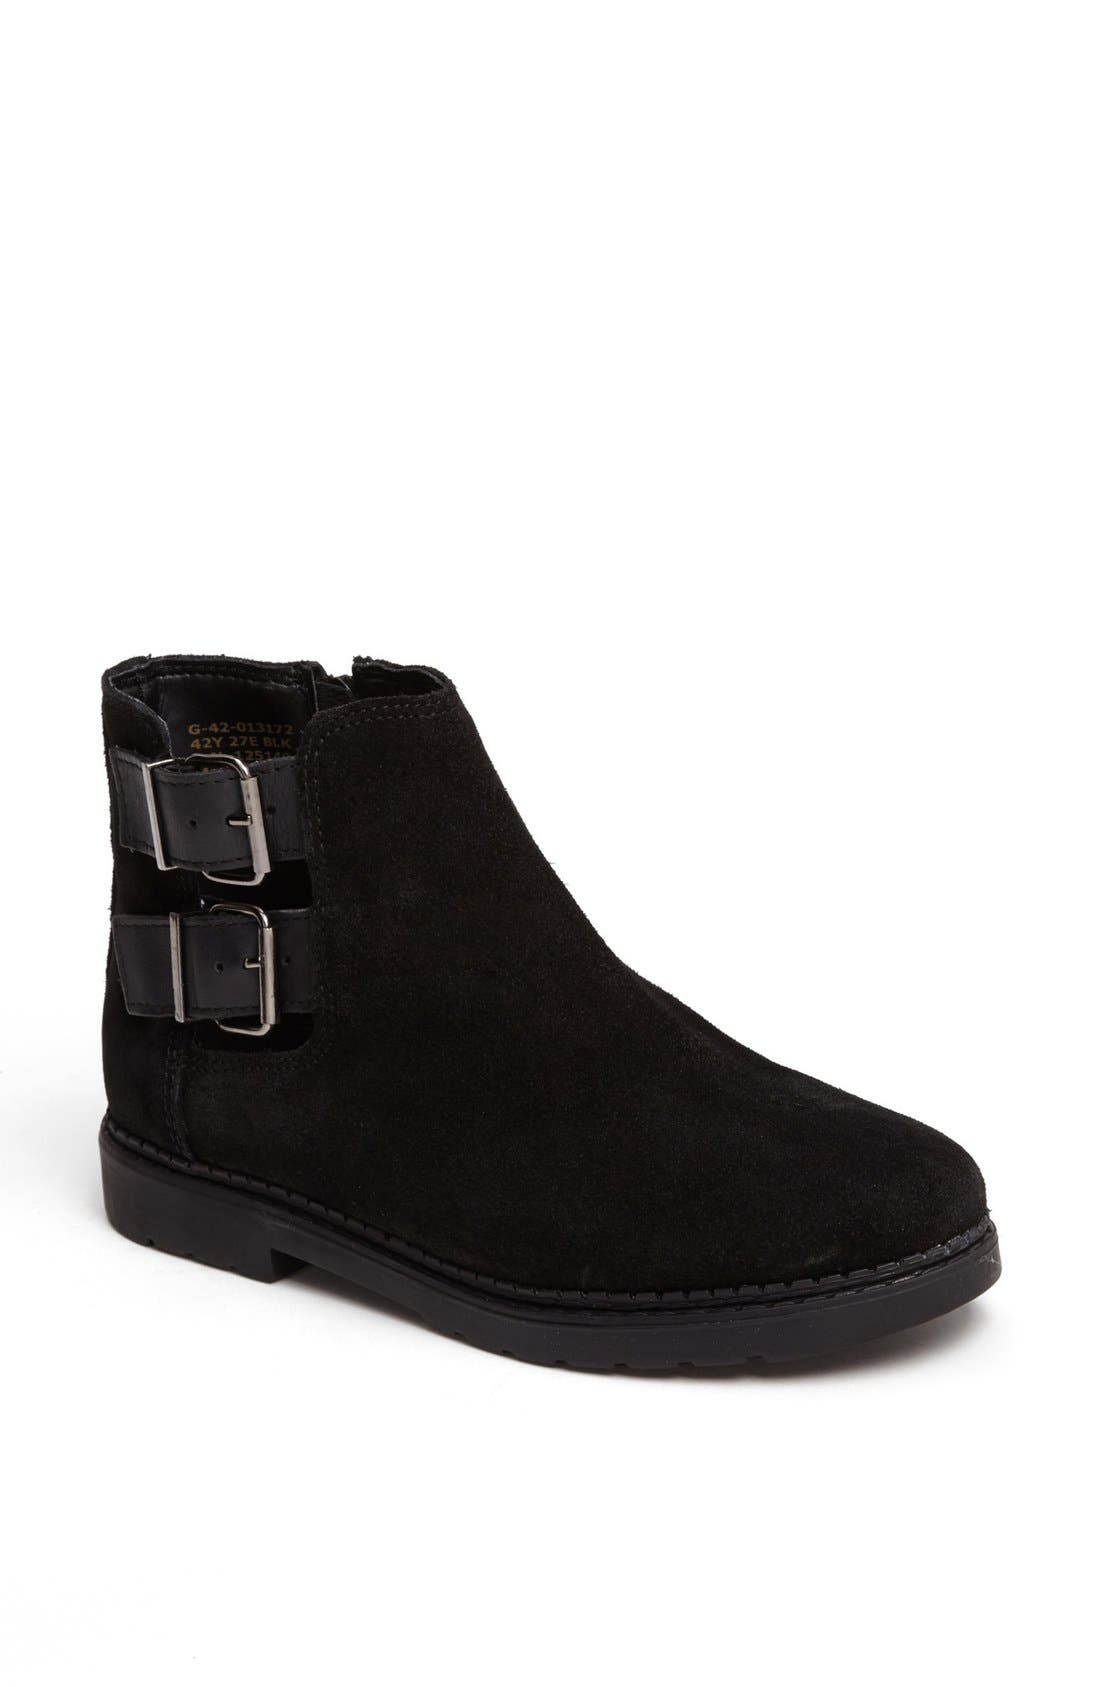 Alternate Image 1 Selected - Topshop 'Majestic' Cutout Suede Boots